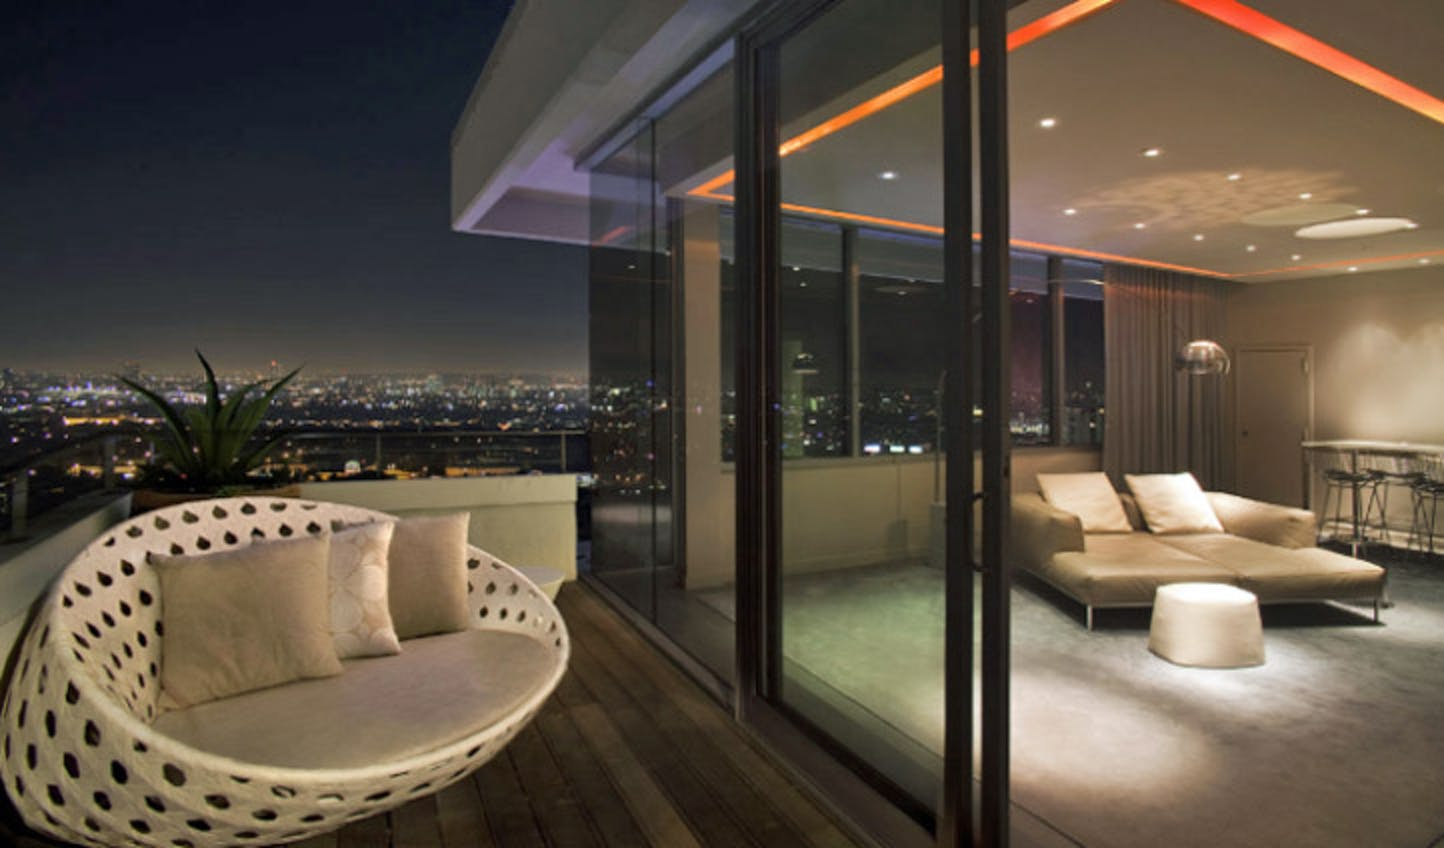 Penthouse Suite, Andaz Hotel, USA